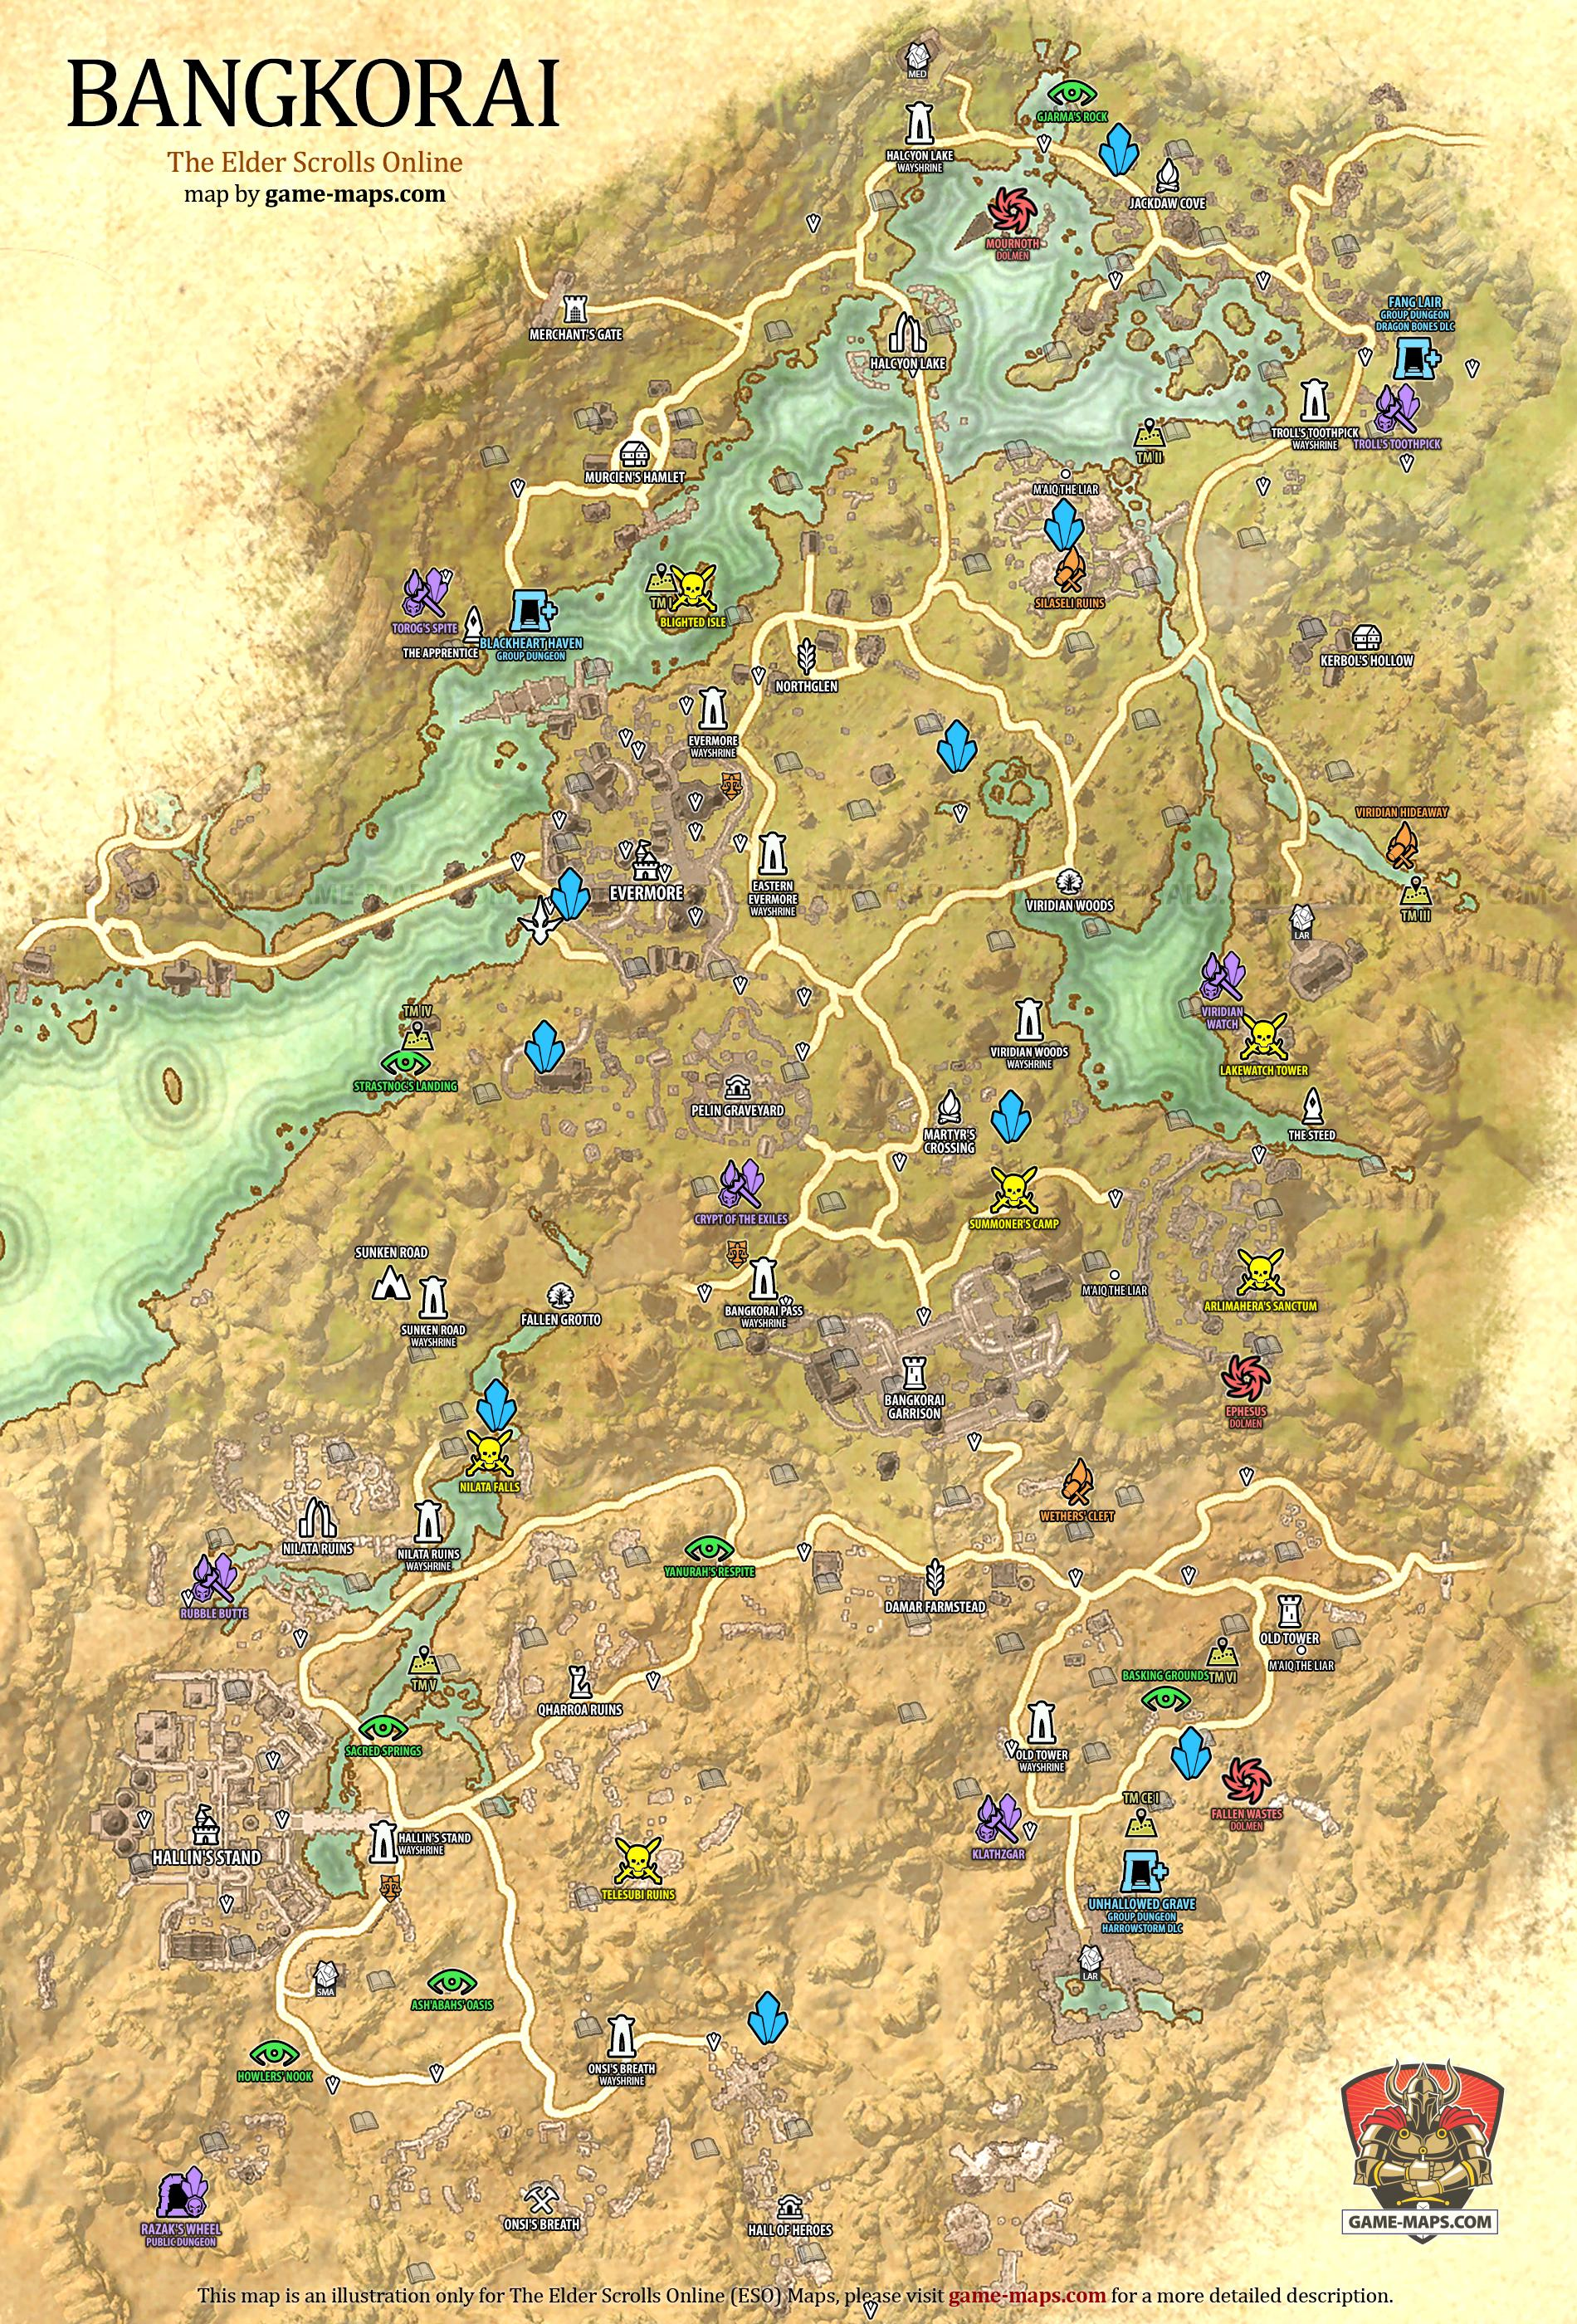 Bangkorai map the elder scrolls online game maps bangkorai zone map evermore and hallins stand the elder scrolls online eso maps guides walkthroughs gumiabroncs Choice Image